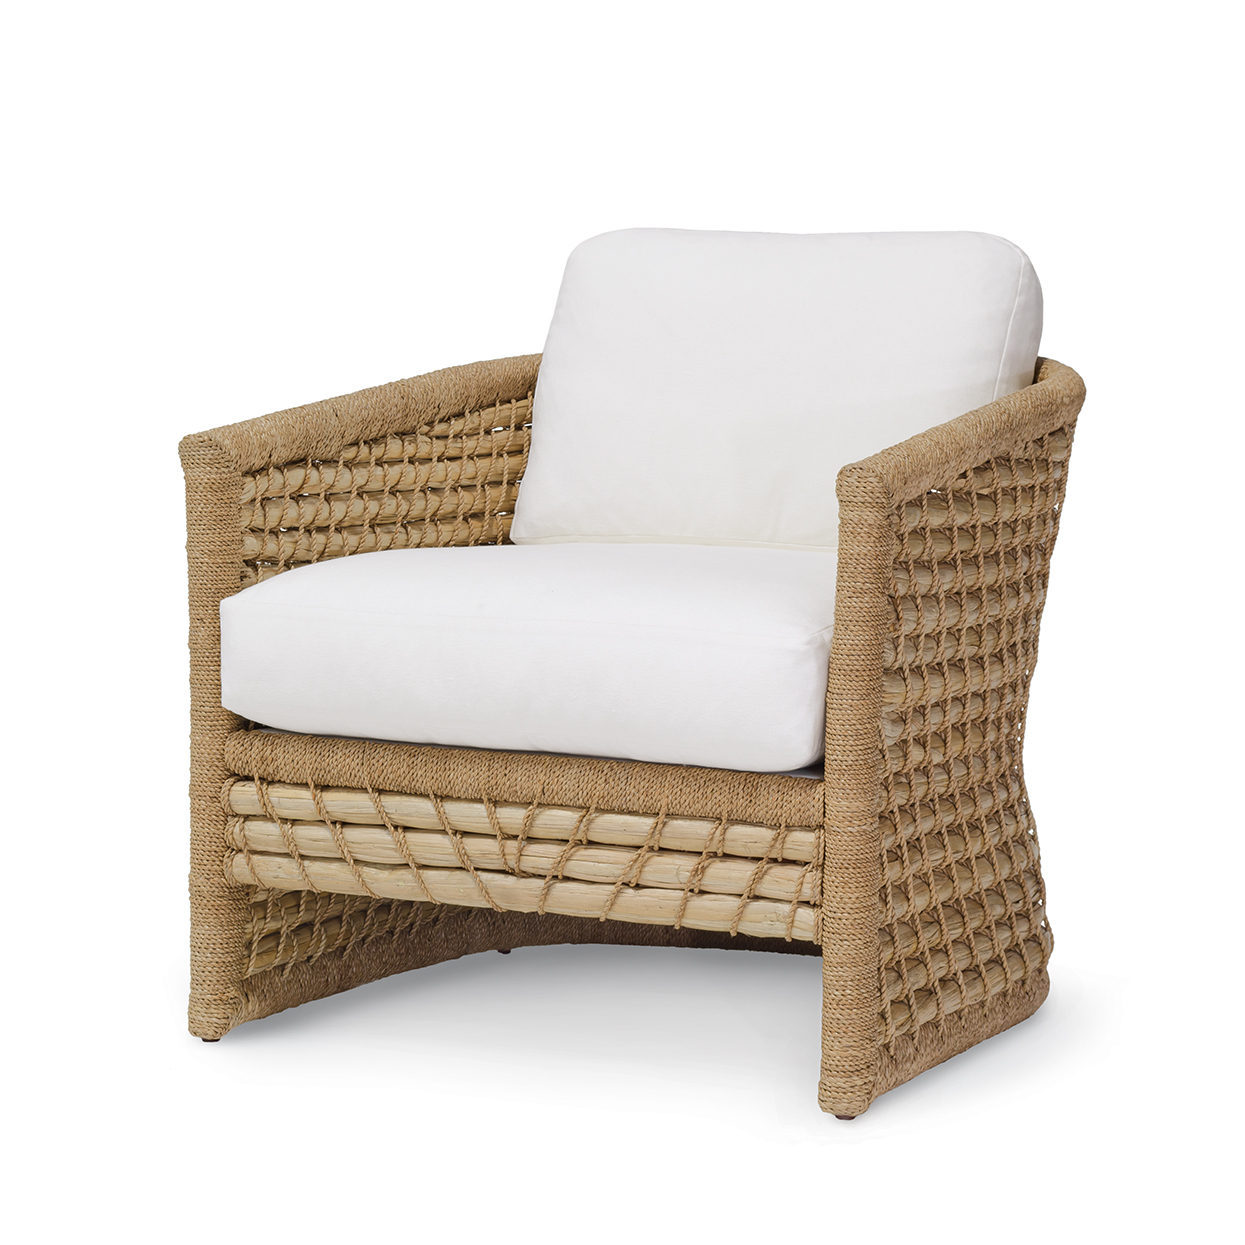 Capitola Lounge Chair  sc 1 st  PALECEK : palecek wicker chair - Cheerinfomania.Com